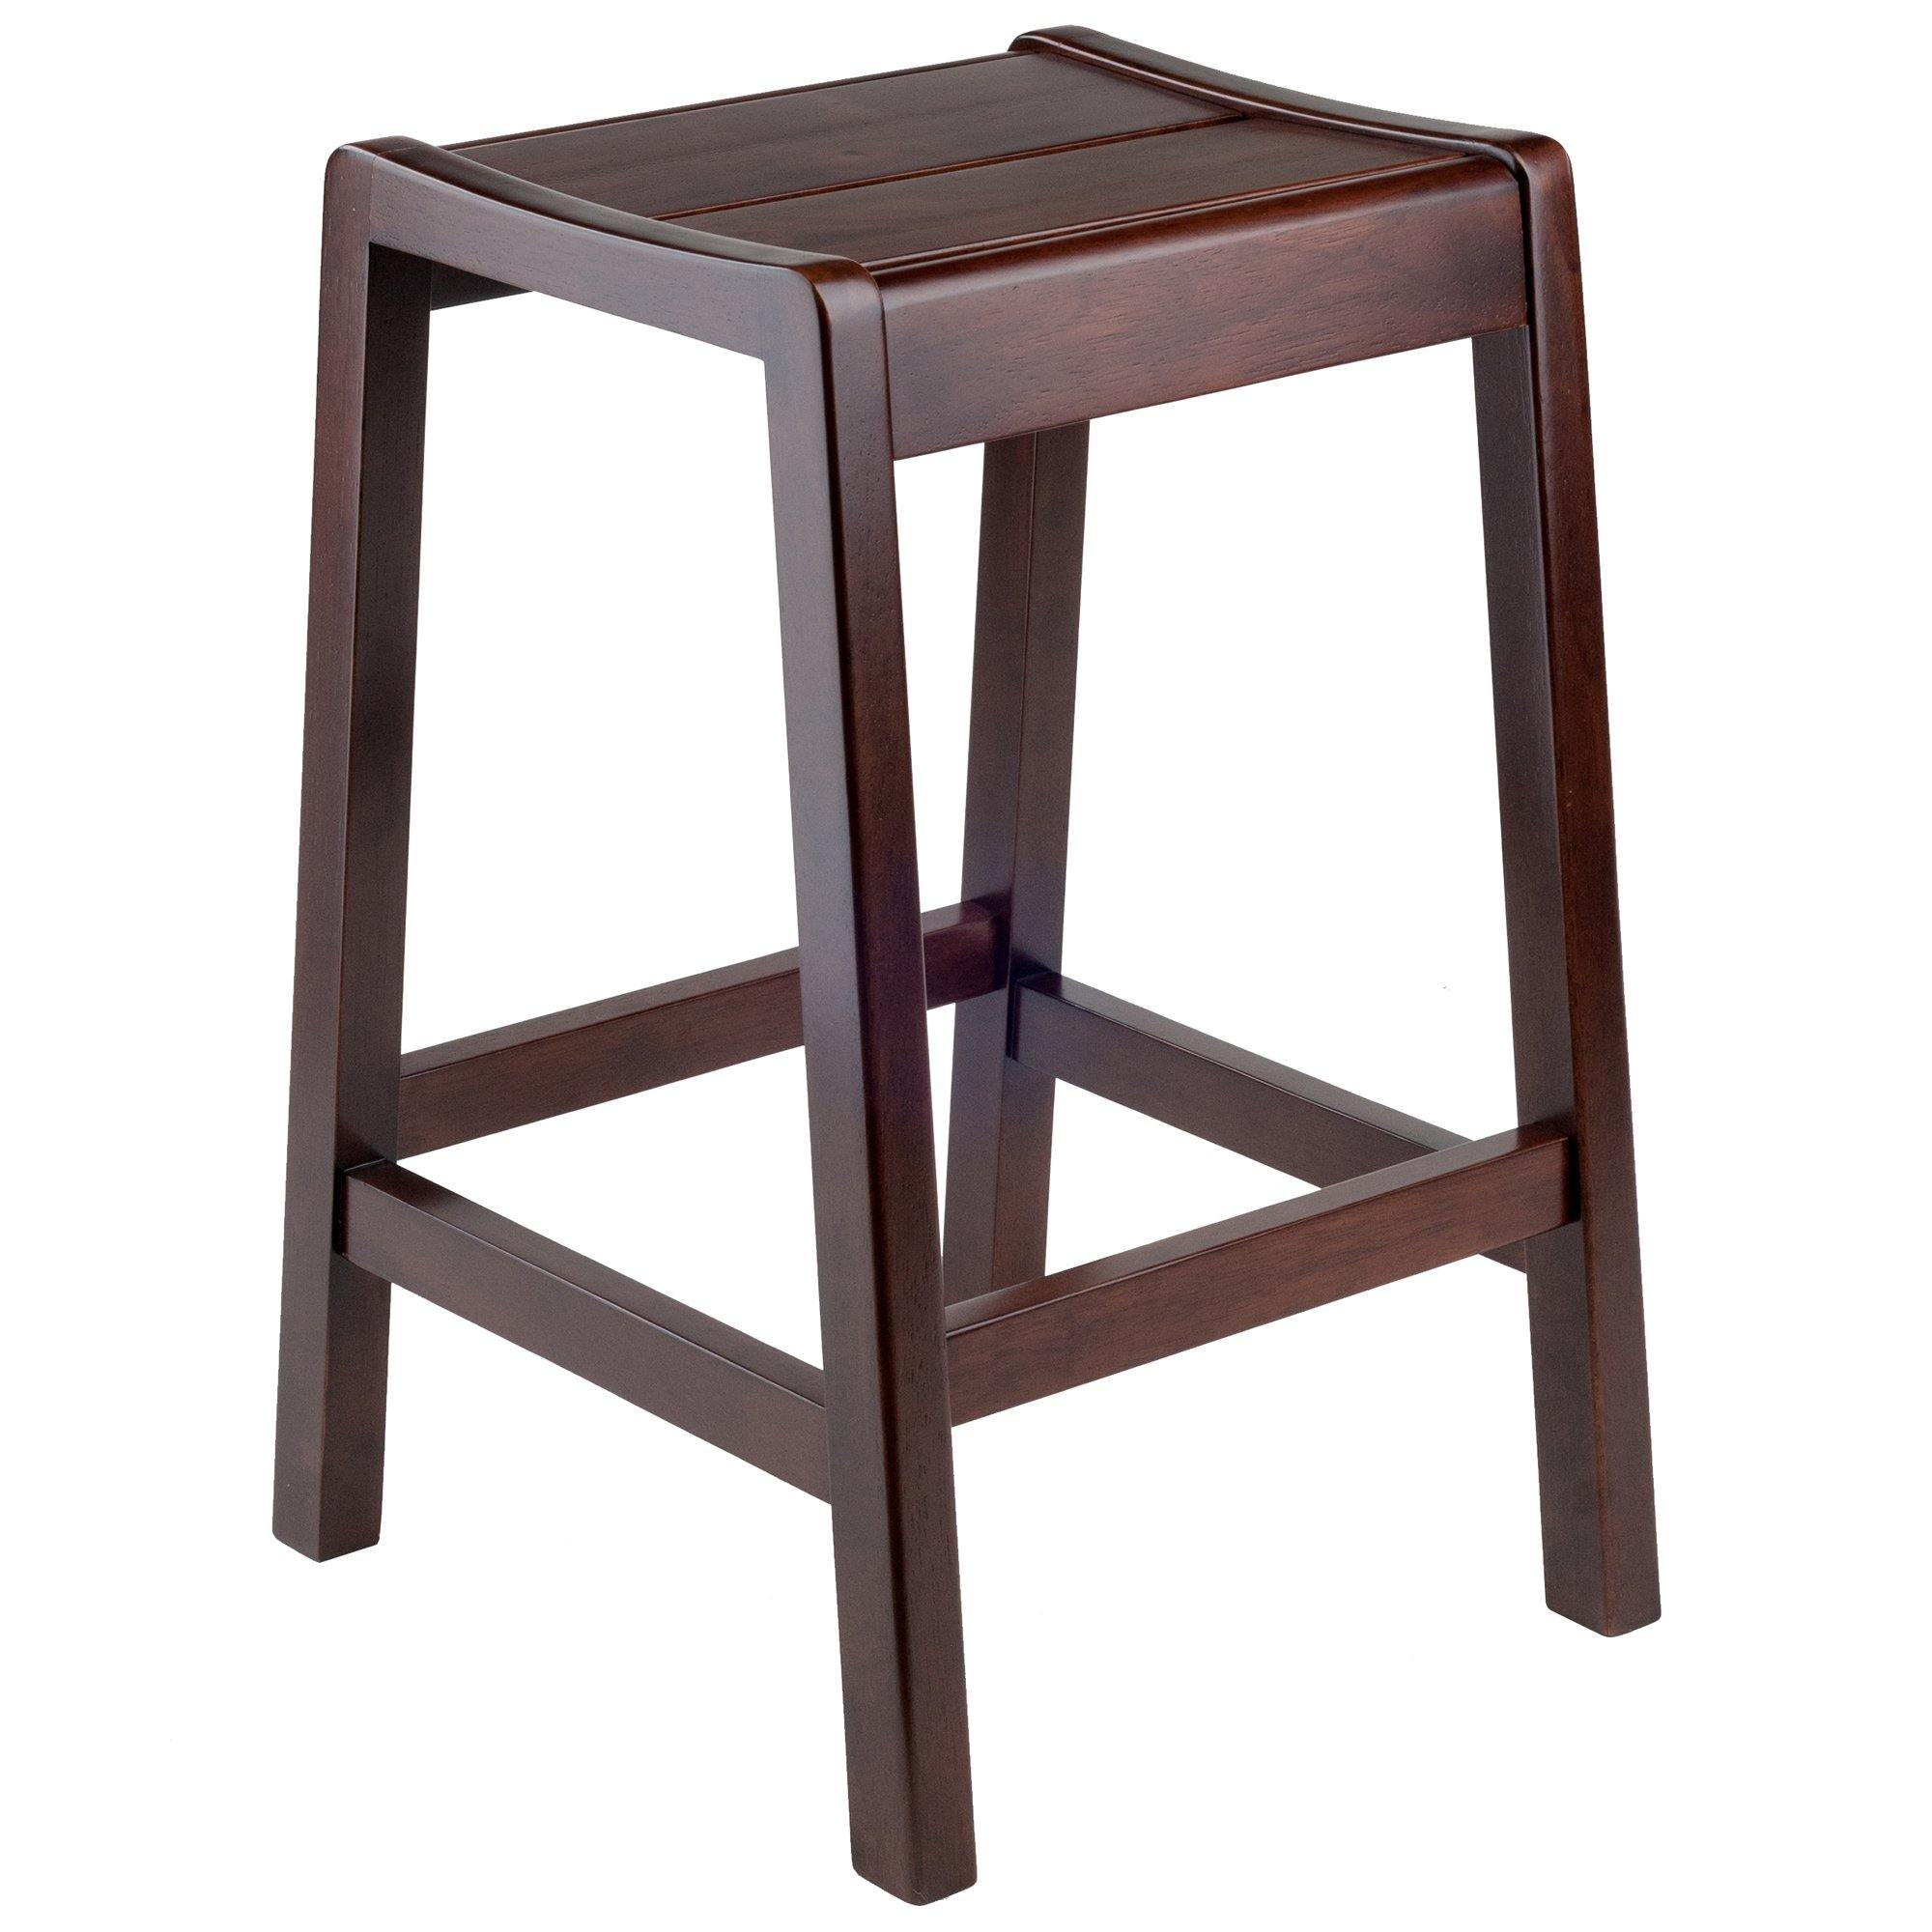 Alicante Concave Seat Counter Stool, Walnut - My USA Furniture